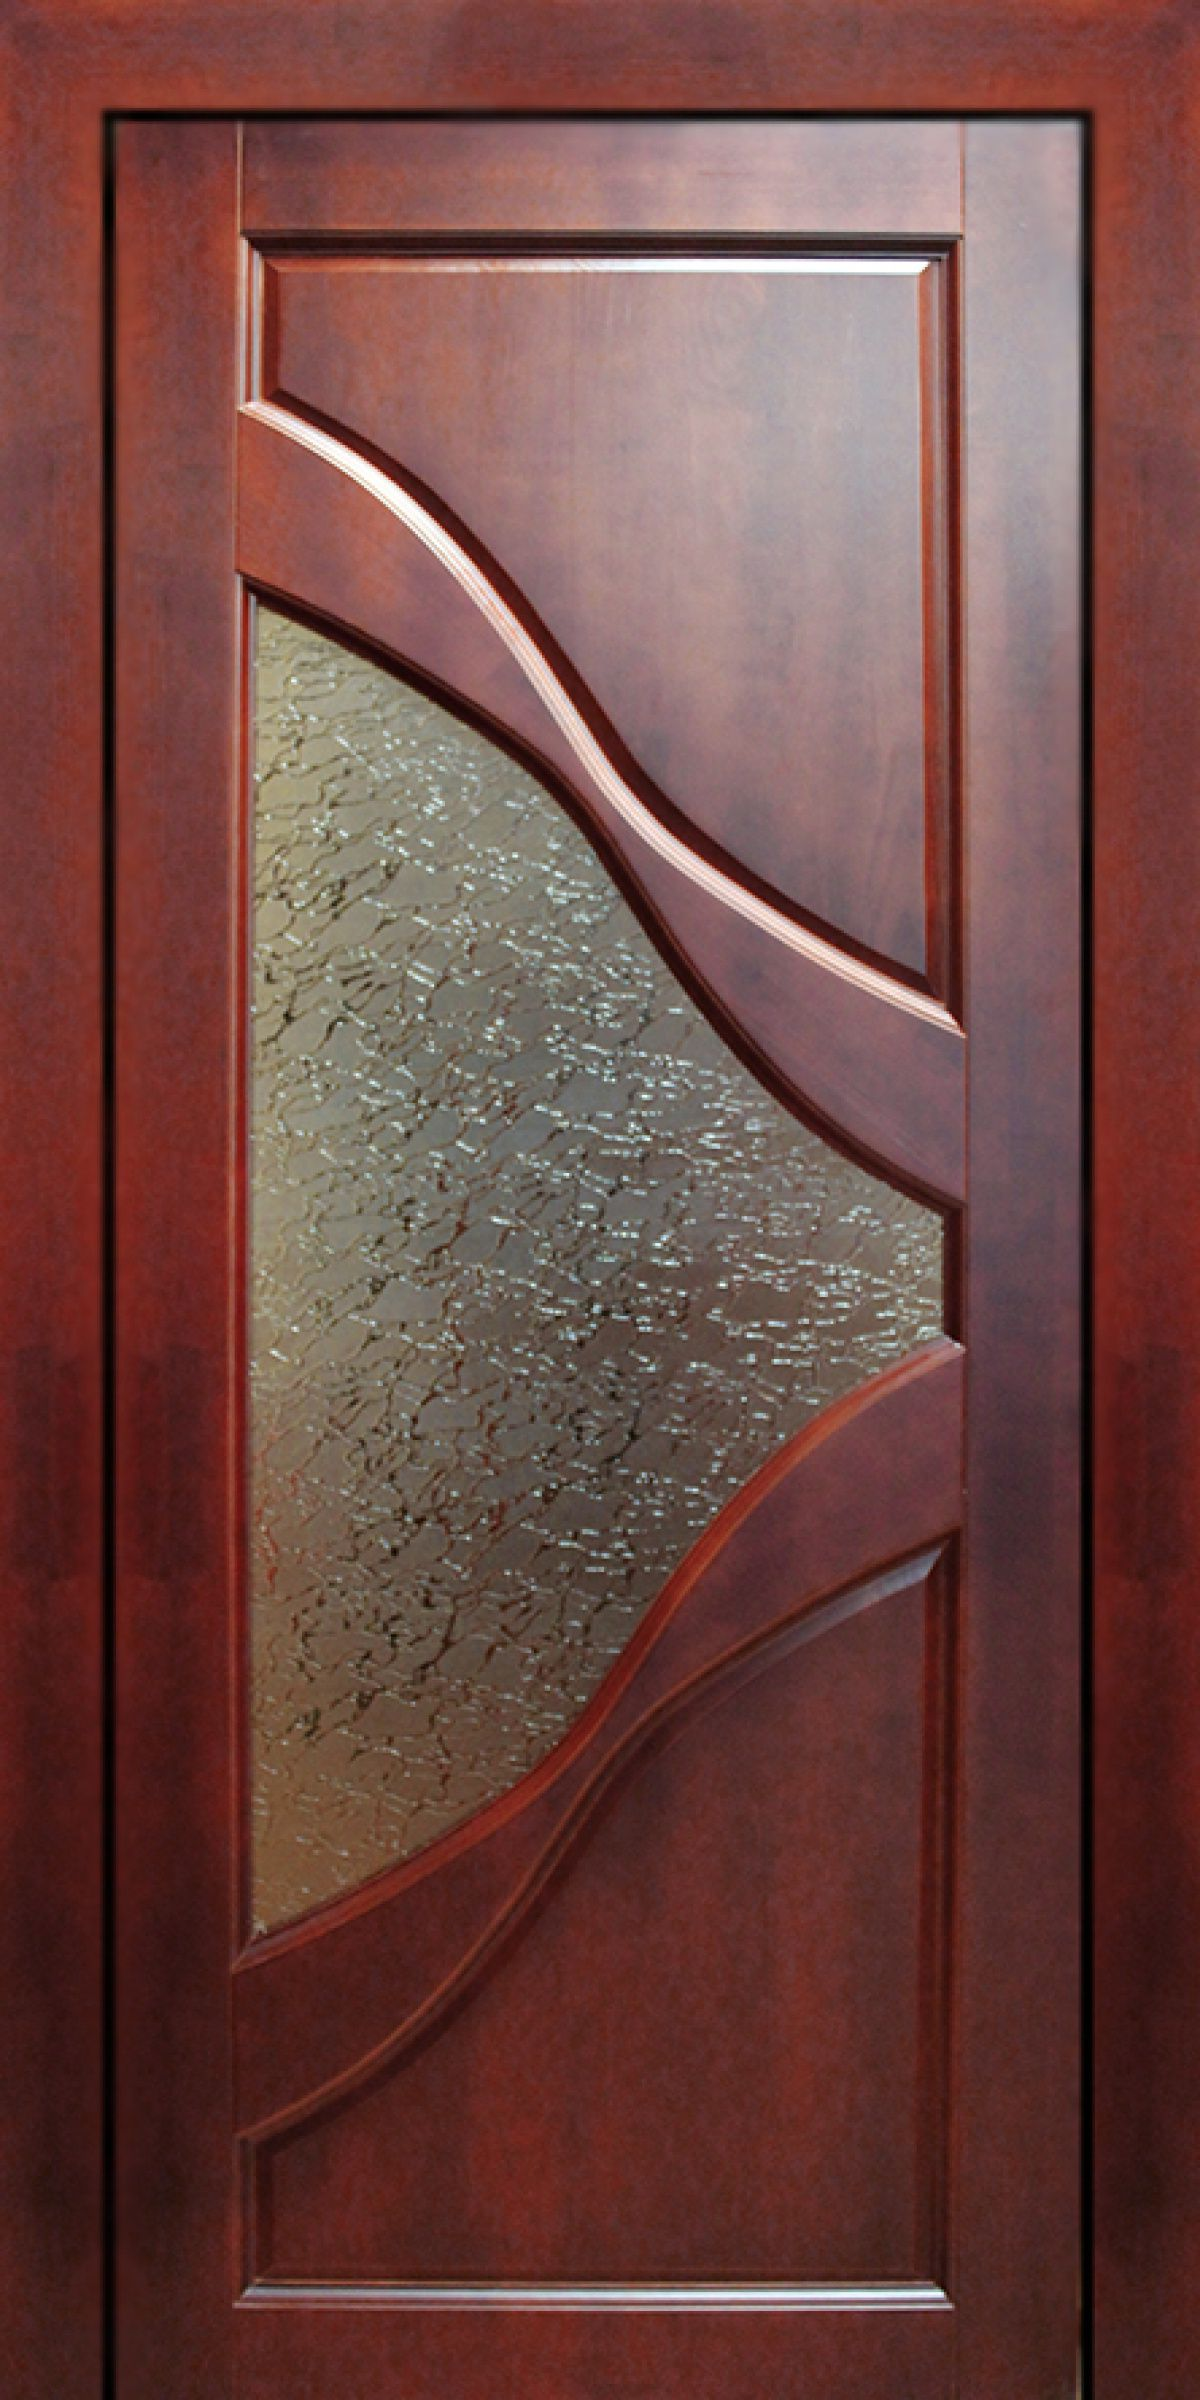 2400 #421E1B Modern Wooden Door With Glass : All About Doors picture/photo Wood Glass Doors 41591200